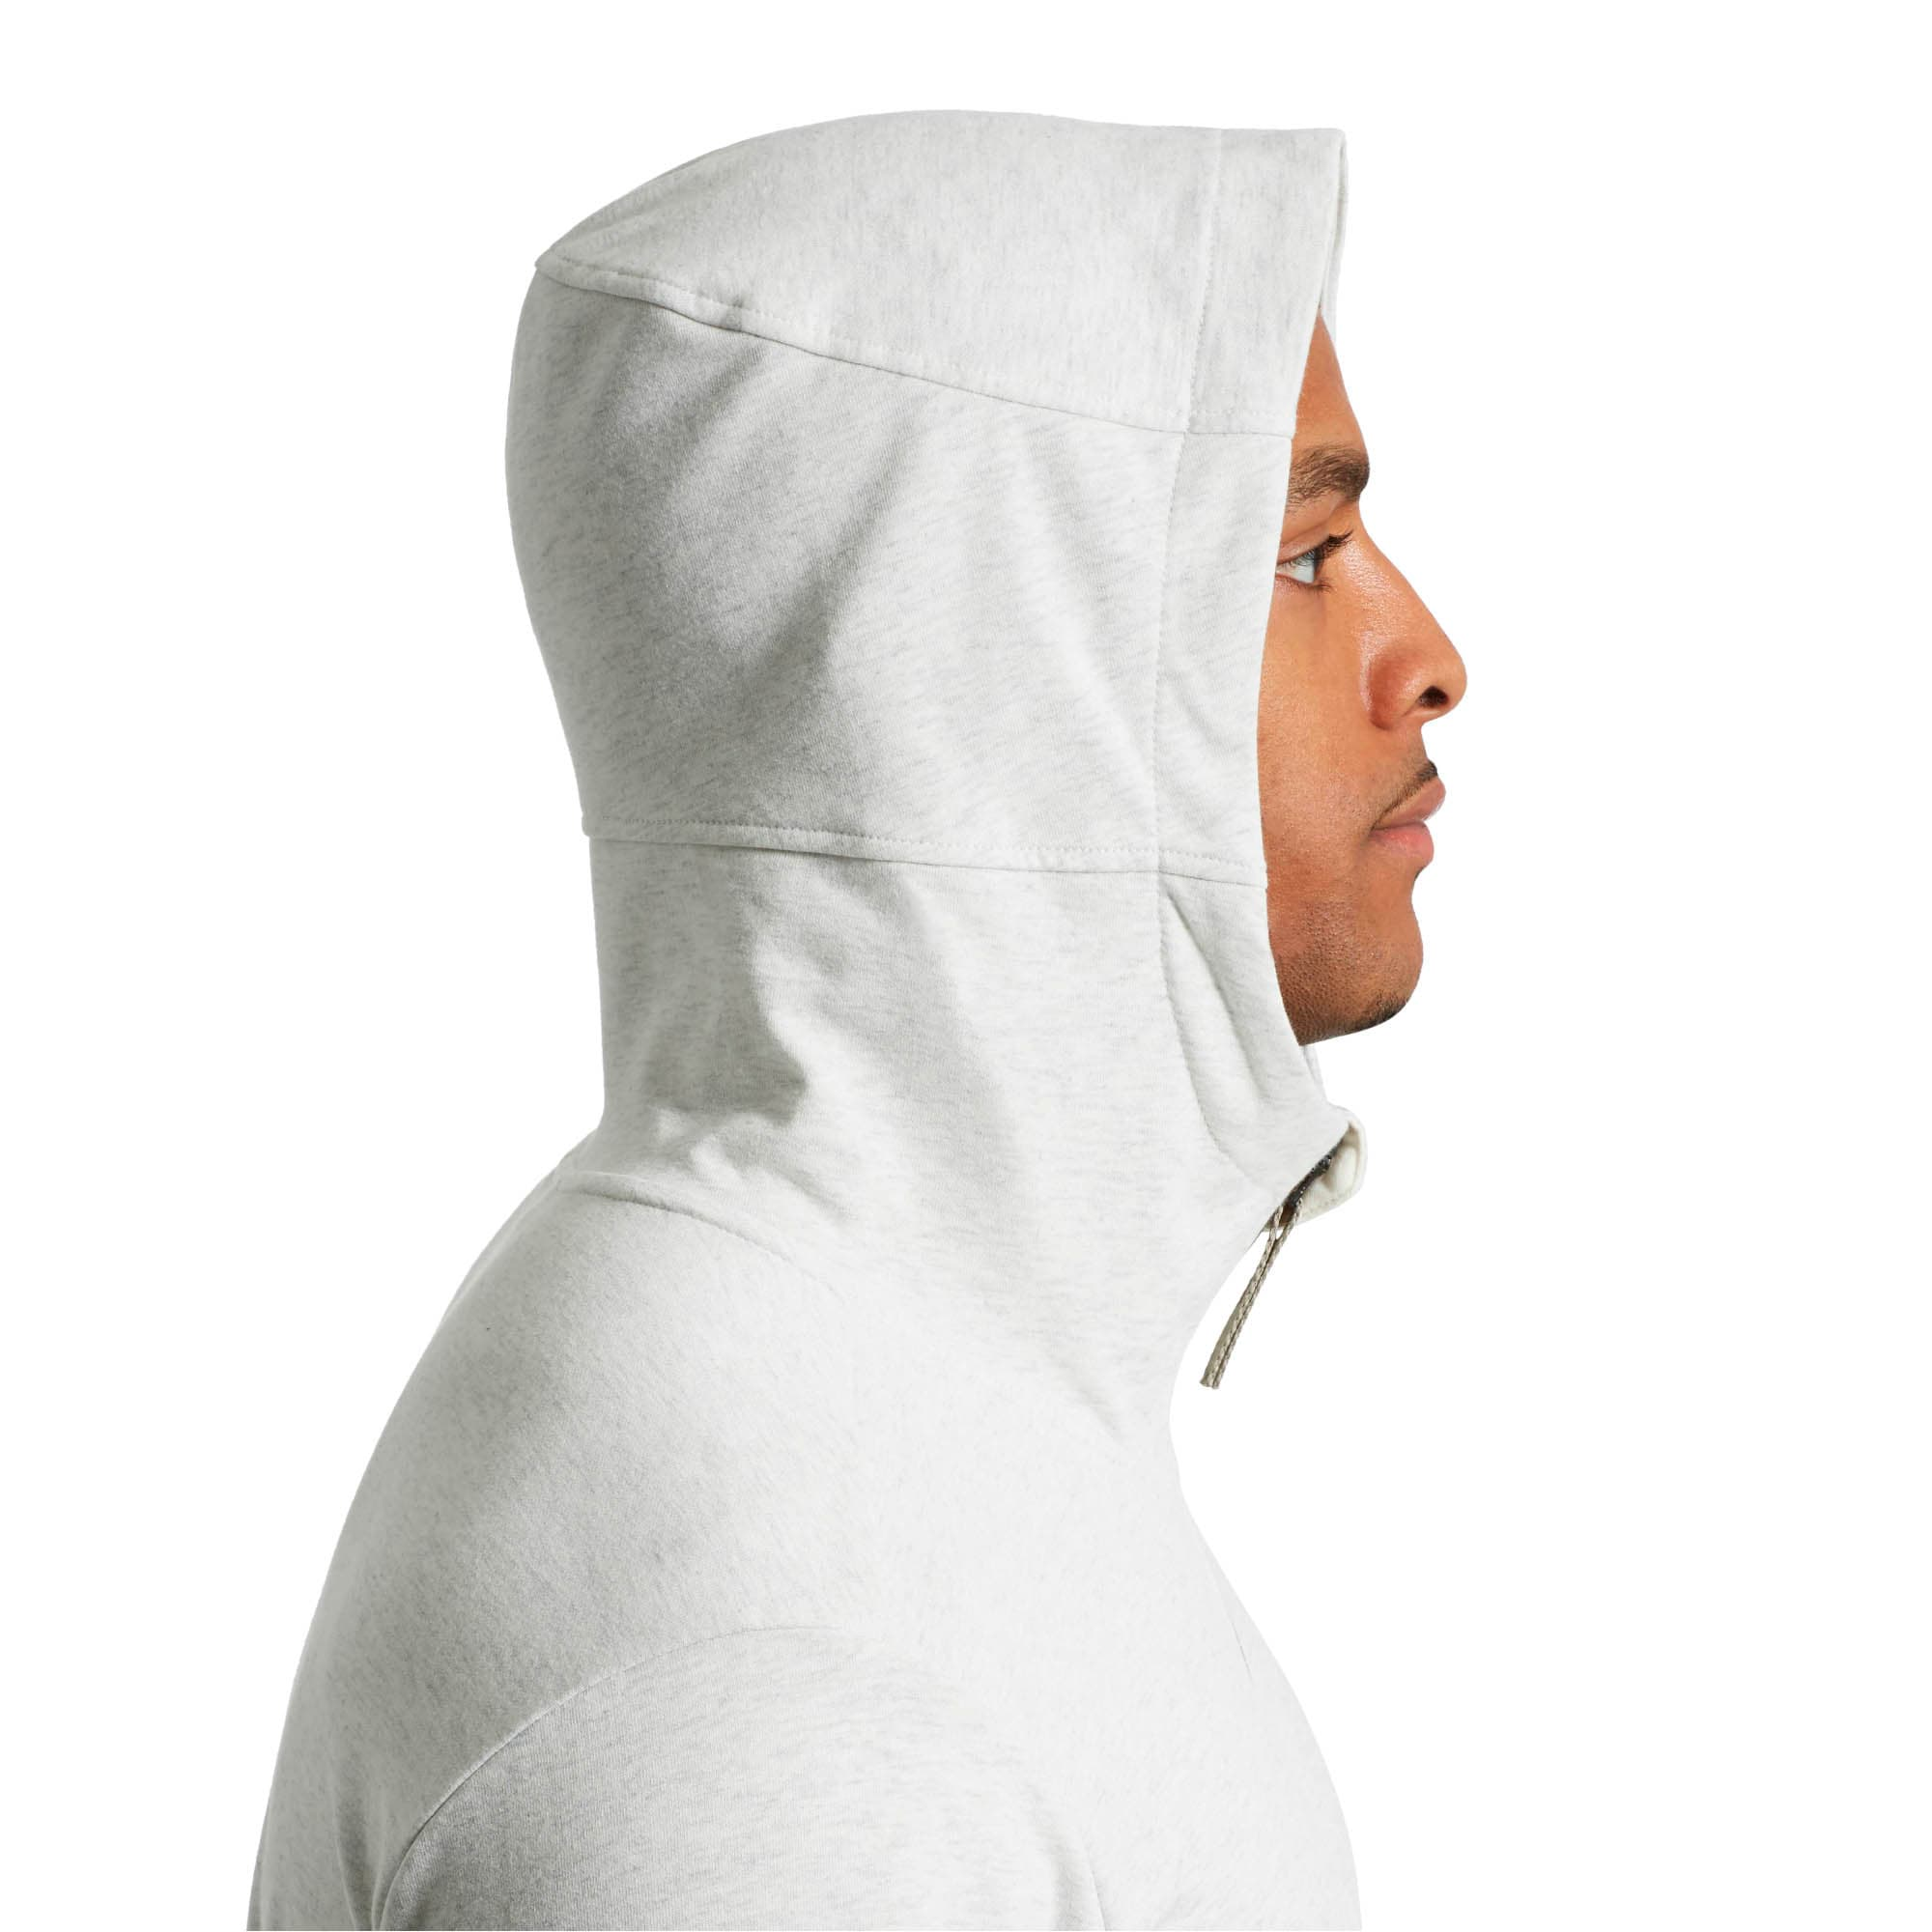 Thumbnail 3 of Energy Desert Full-Zip Men's Jacket, Whisper White Heather, medium